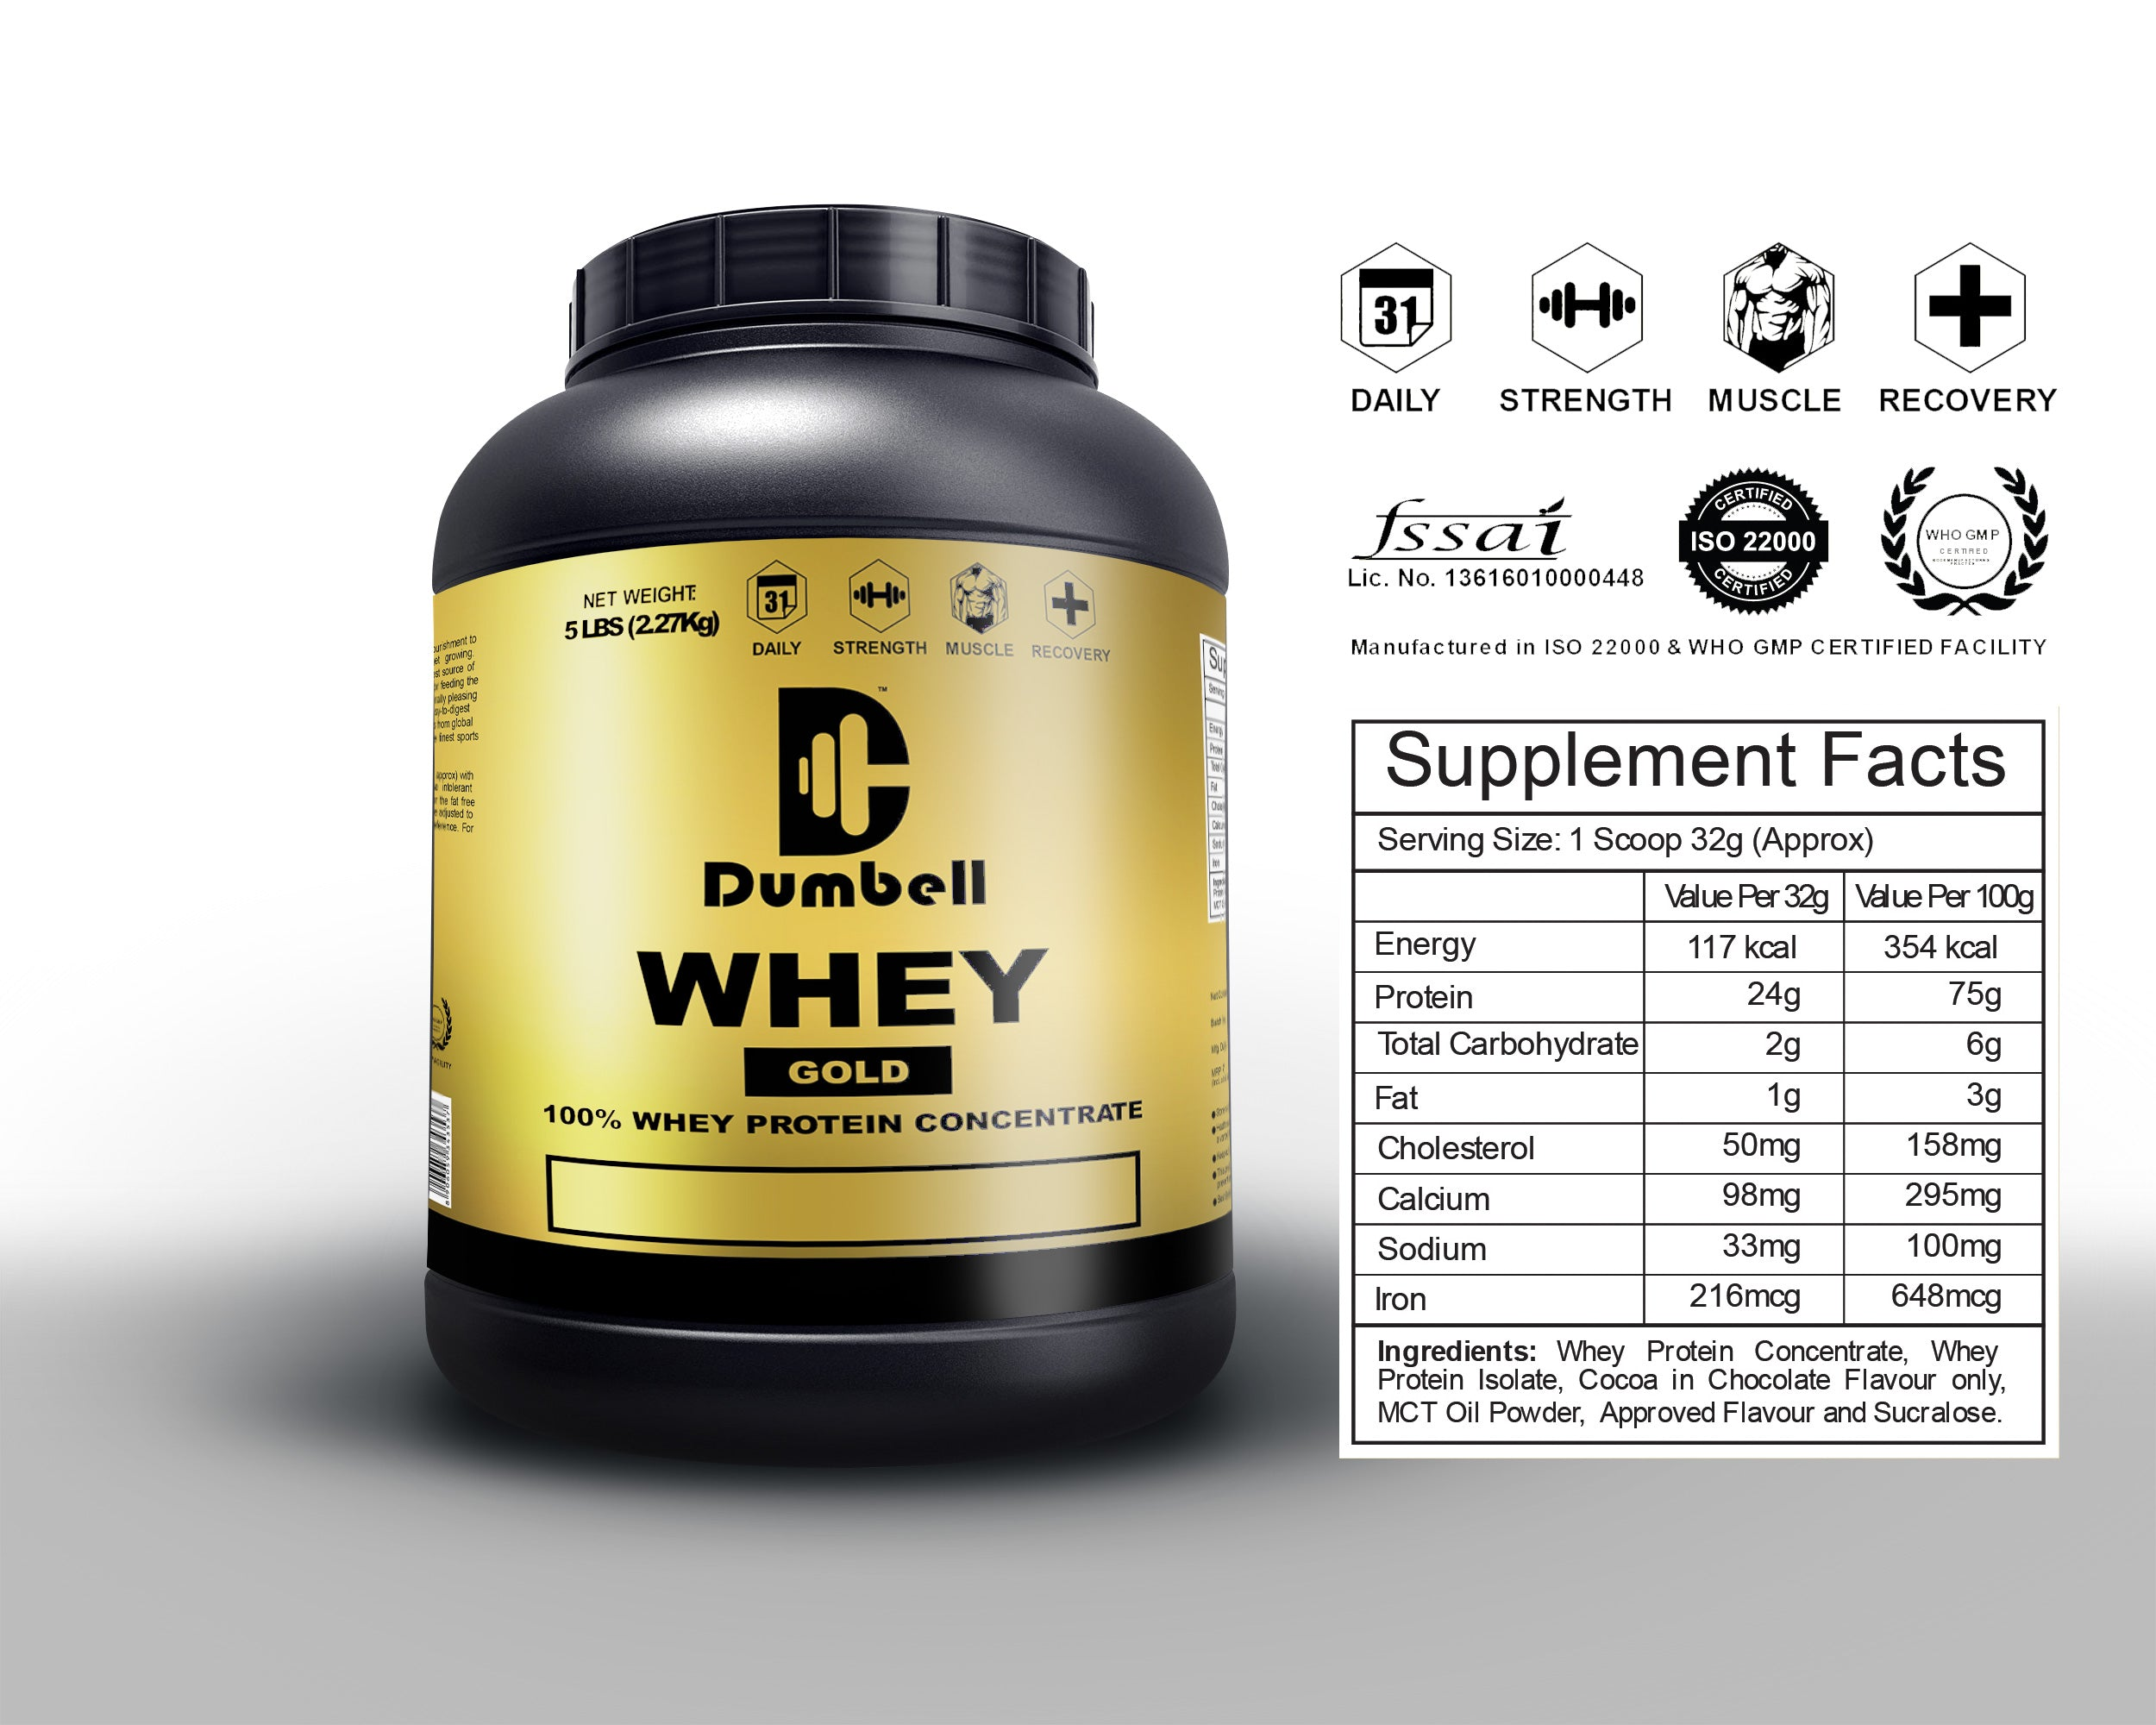 WHEY GOLD - 100% WHEY PROTEIN CONCENTRATE